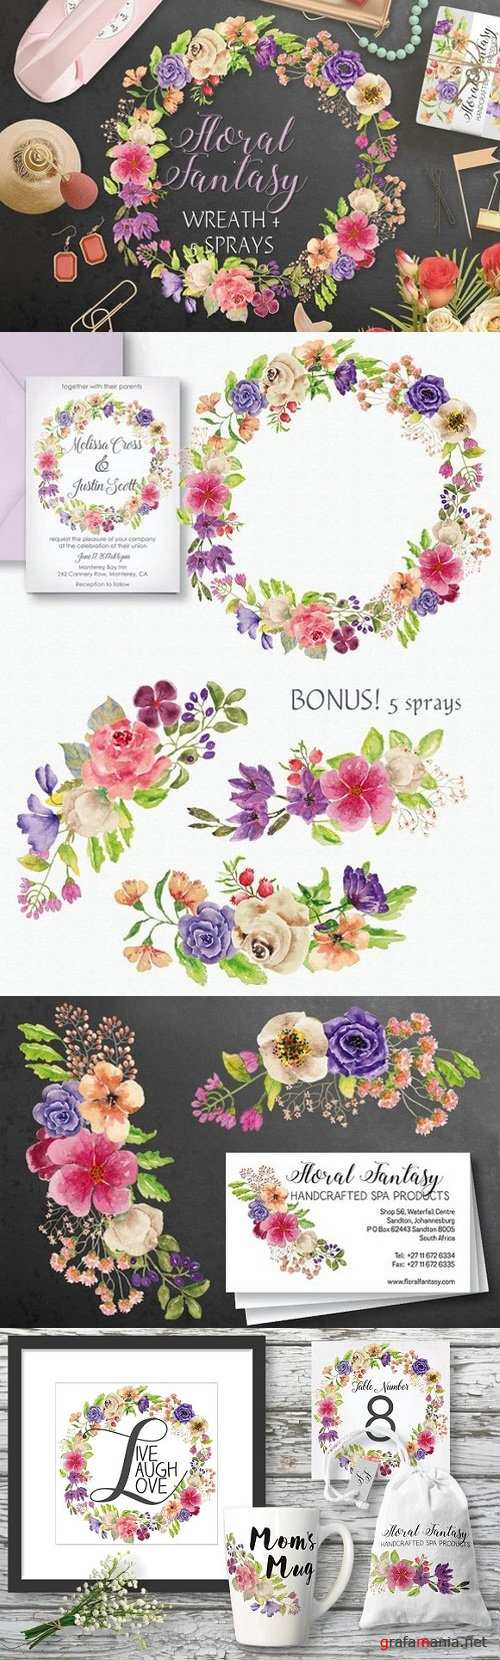 Watercolor wreath of mixed florals 1481621